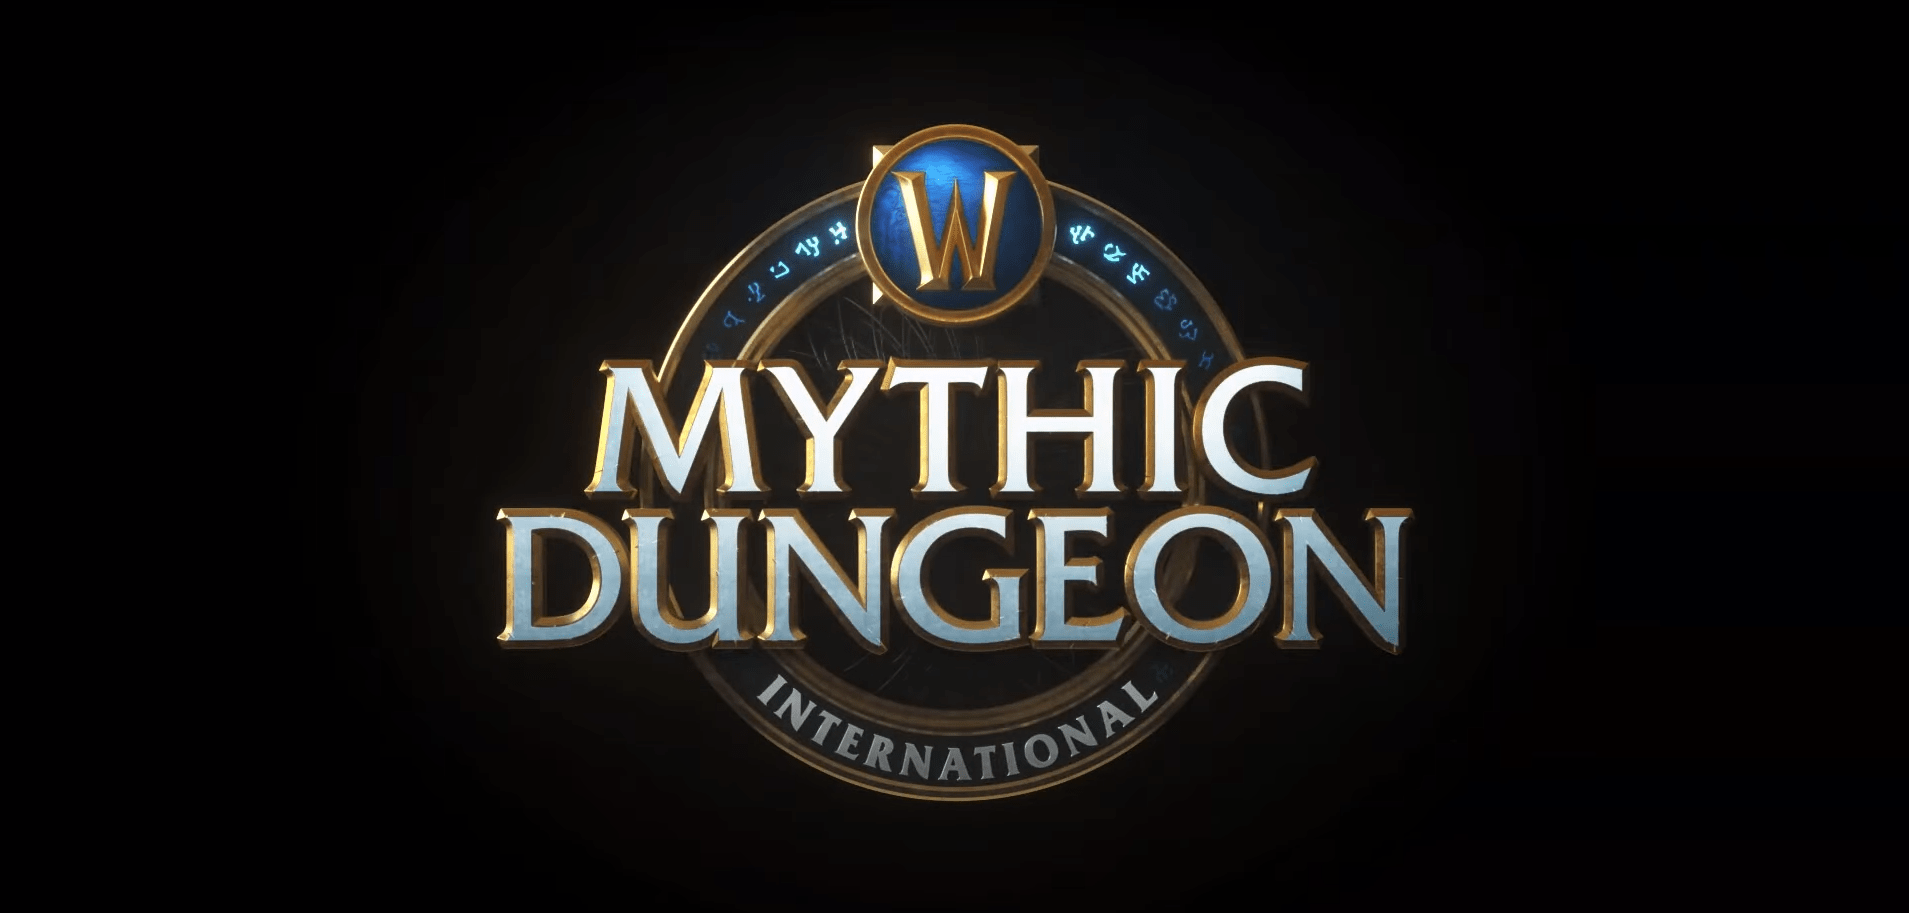 World Of Warcraft's Mythic Dungeon International Returns For The Third EU/Asia Cup This Weekend!